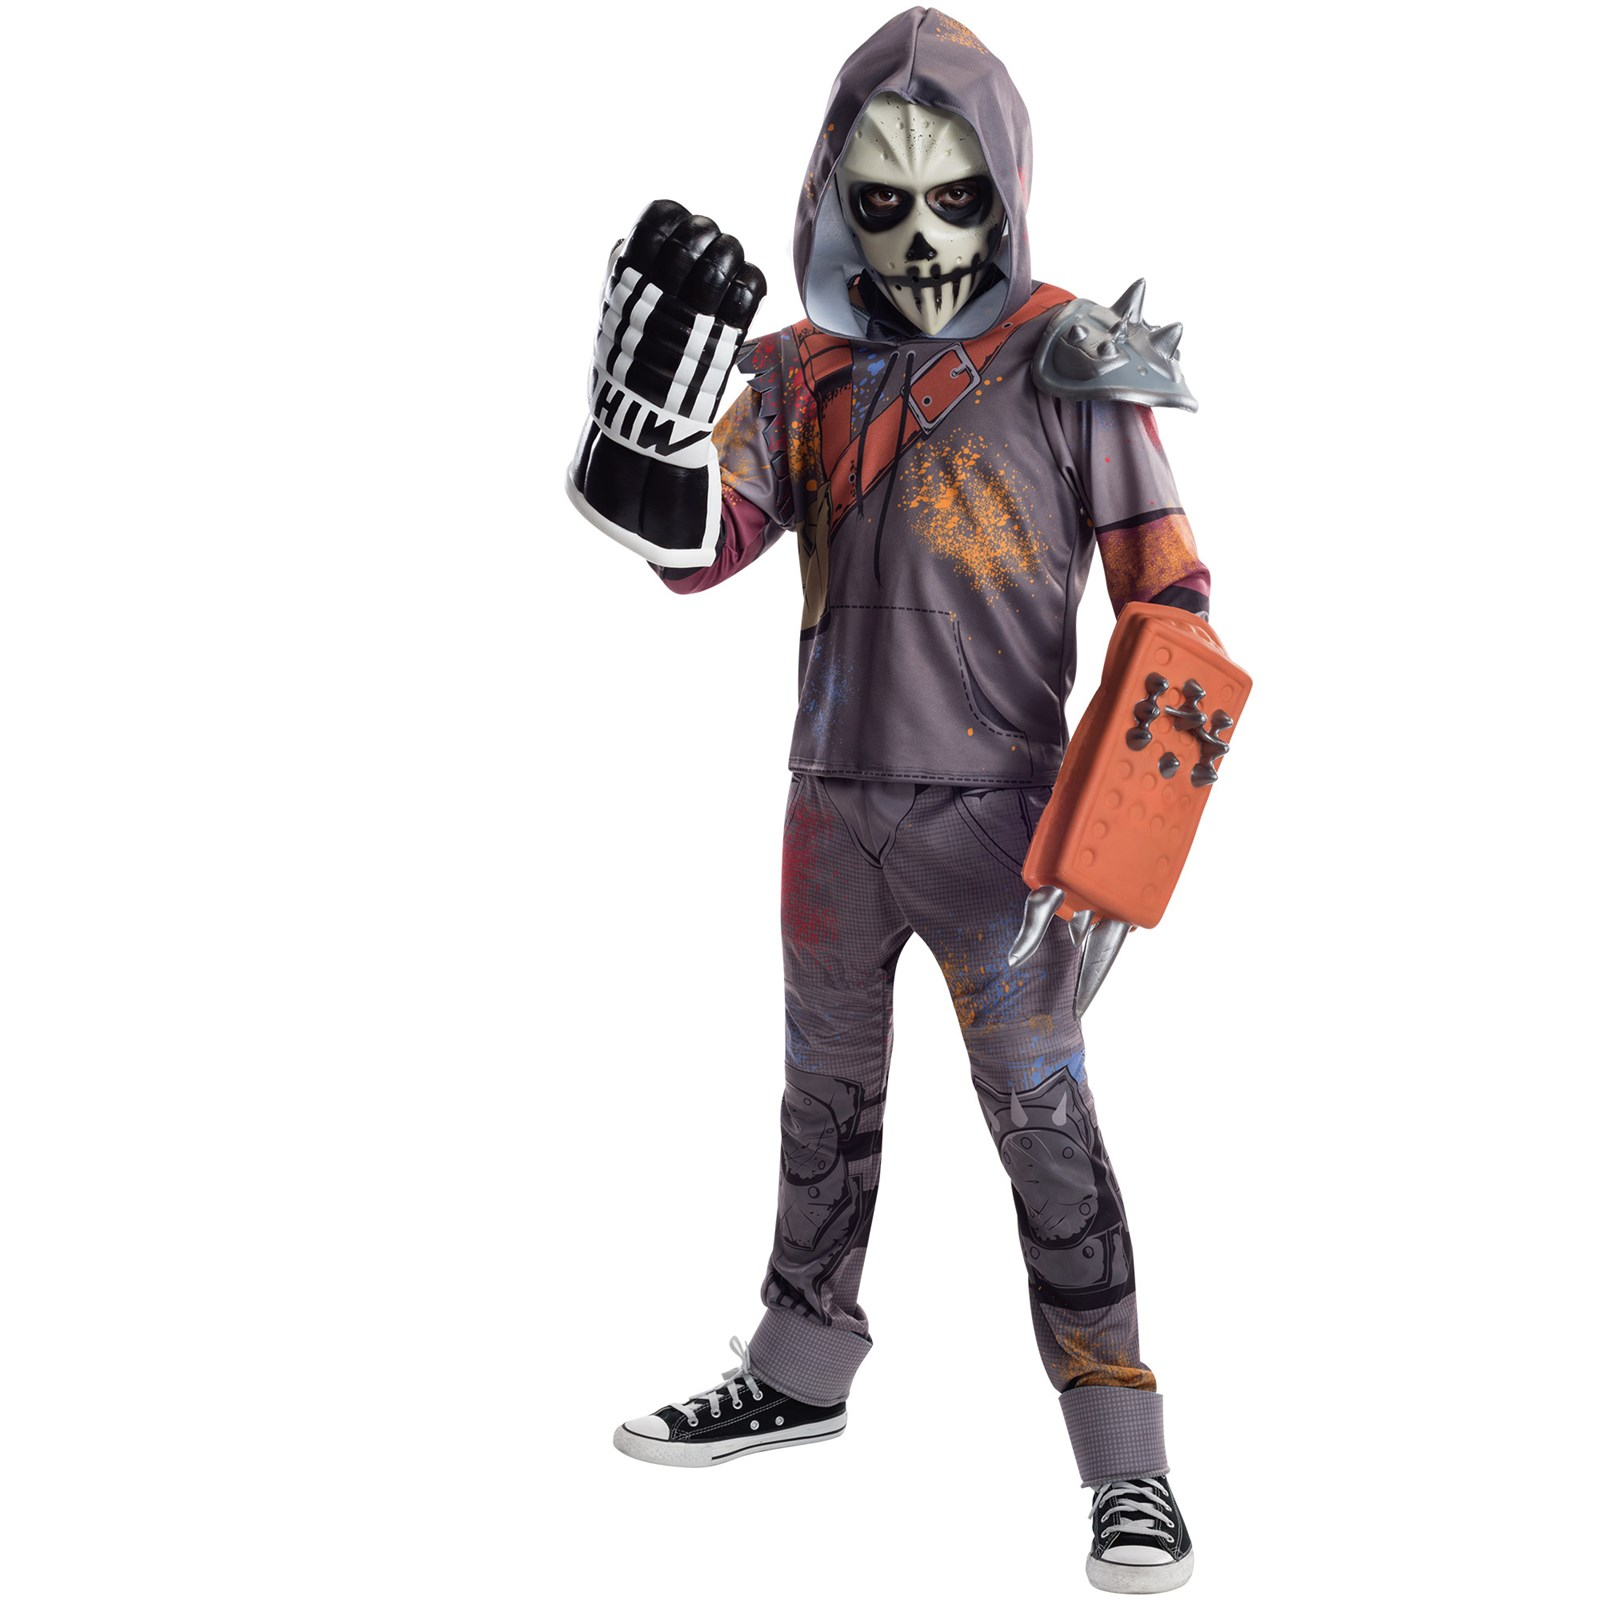 Deluxe Casey Jones Teenage Mutant Ninja Turtles Costume for Kids